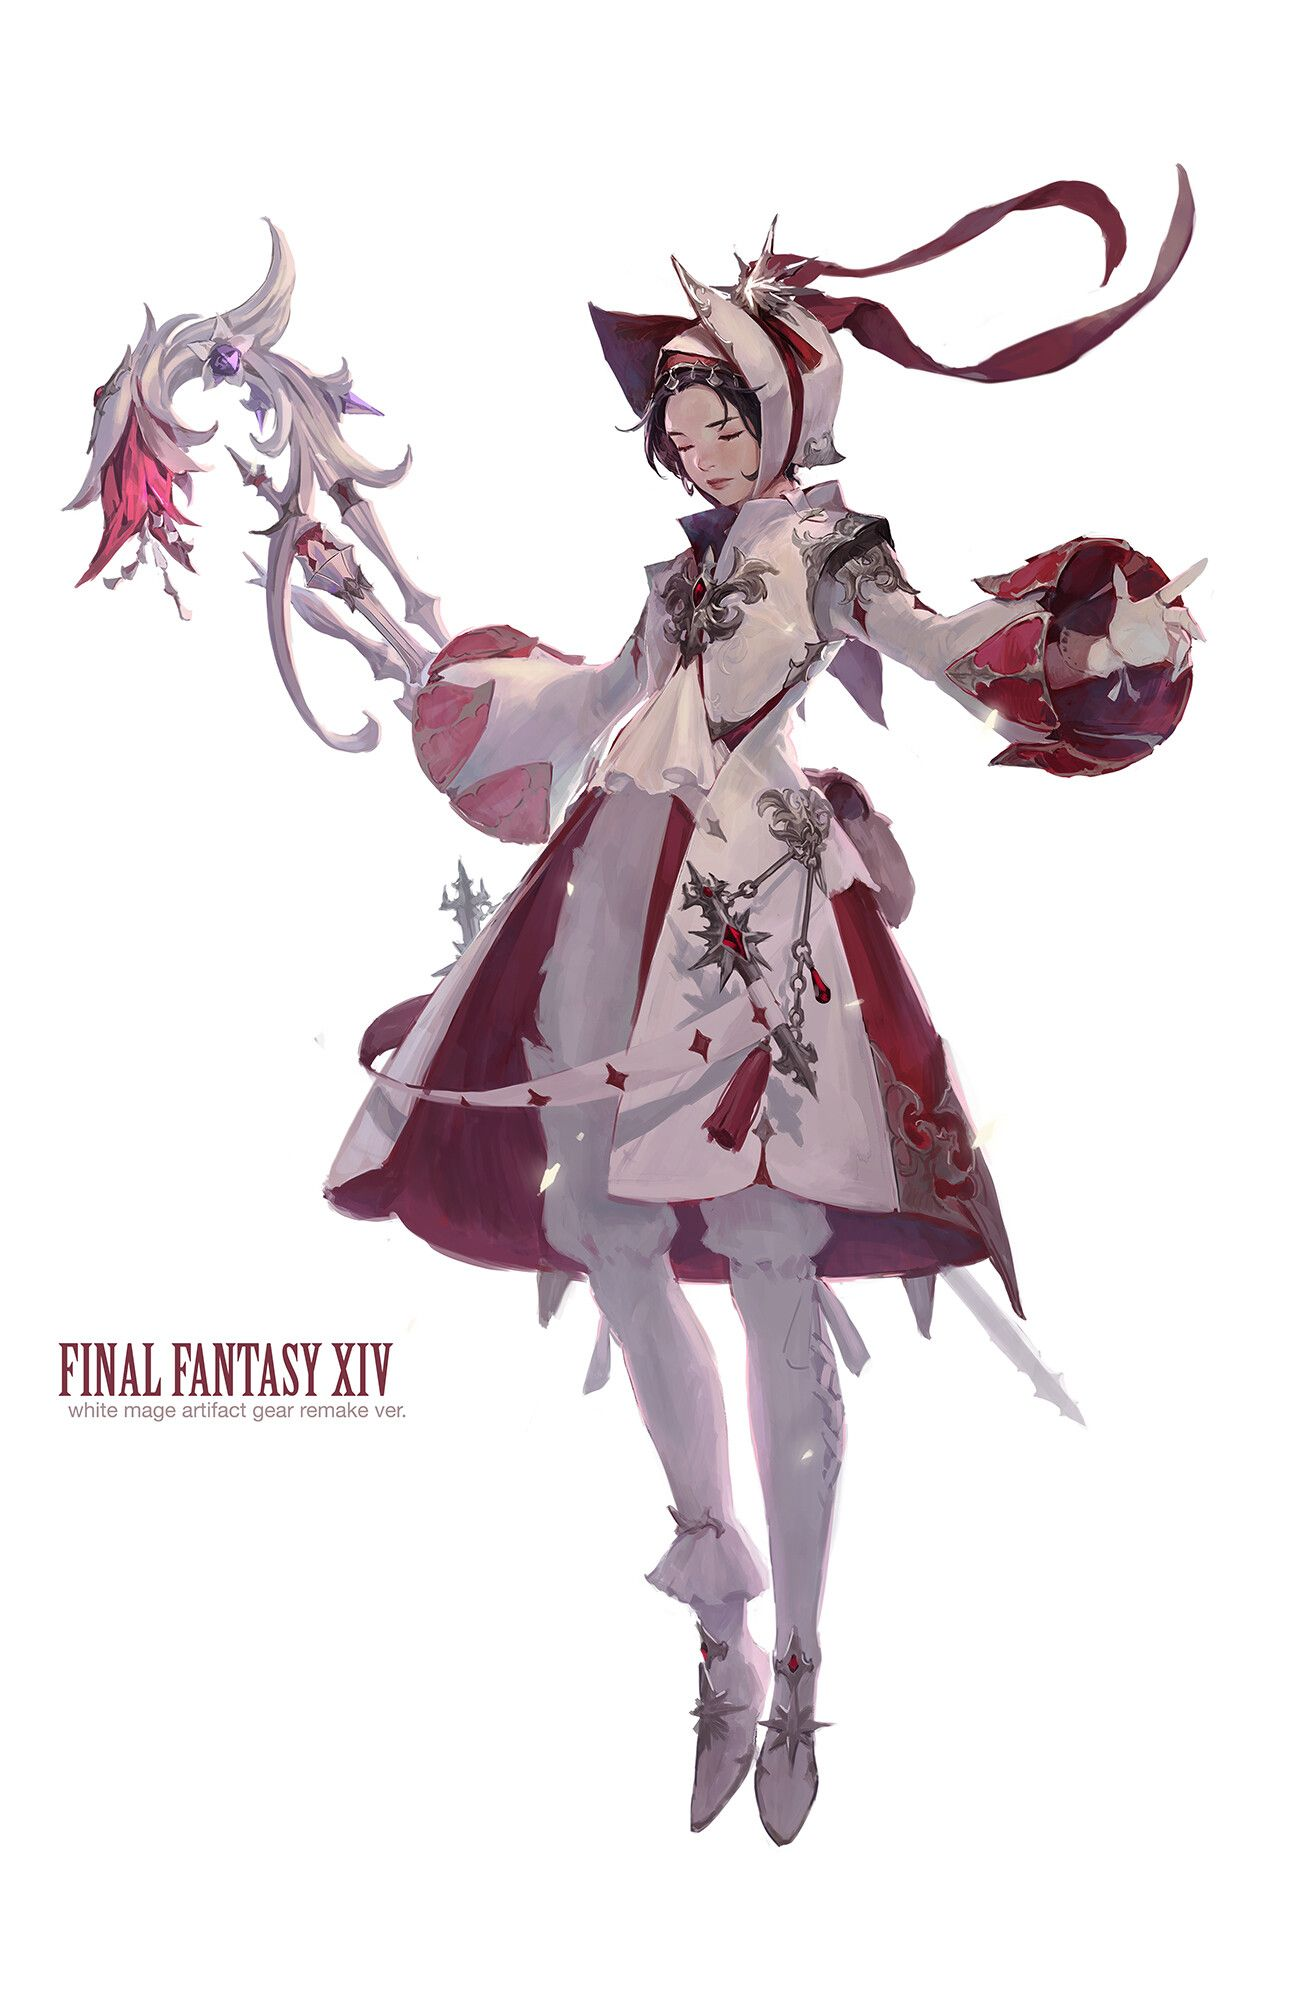 Ffxiv Fanart By Bom Yeonwhite Mage Artifact Gear Remake Ver Fantasy Character Design Concept Art Characters Character Art